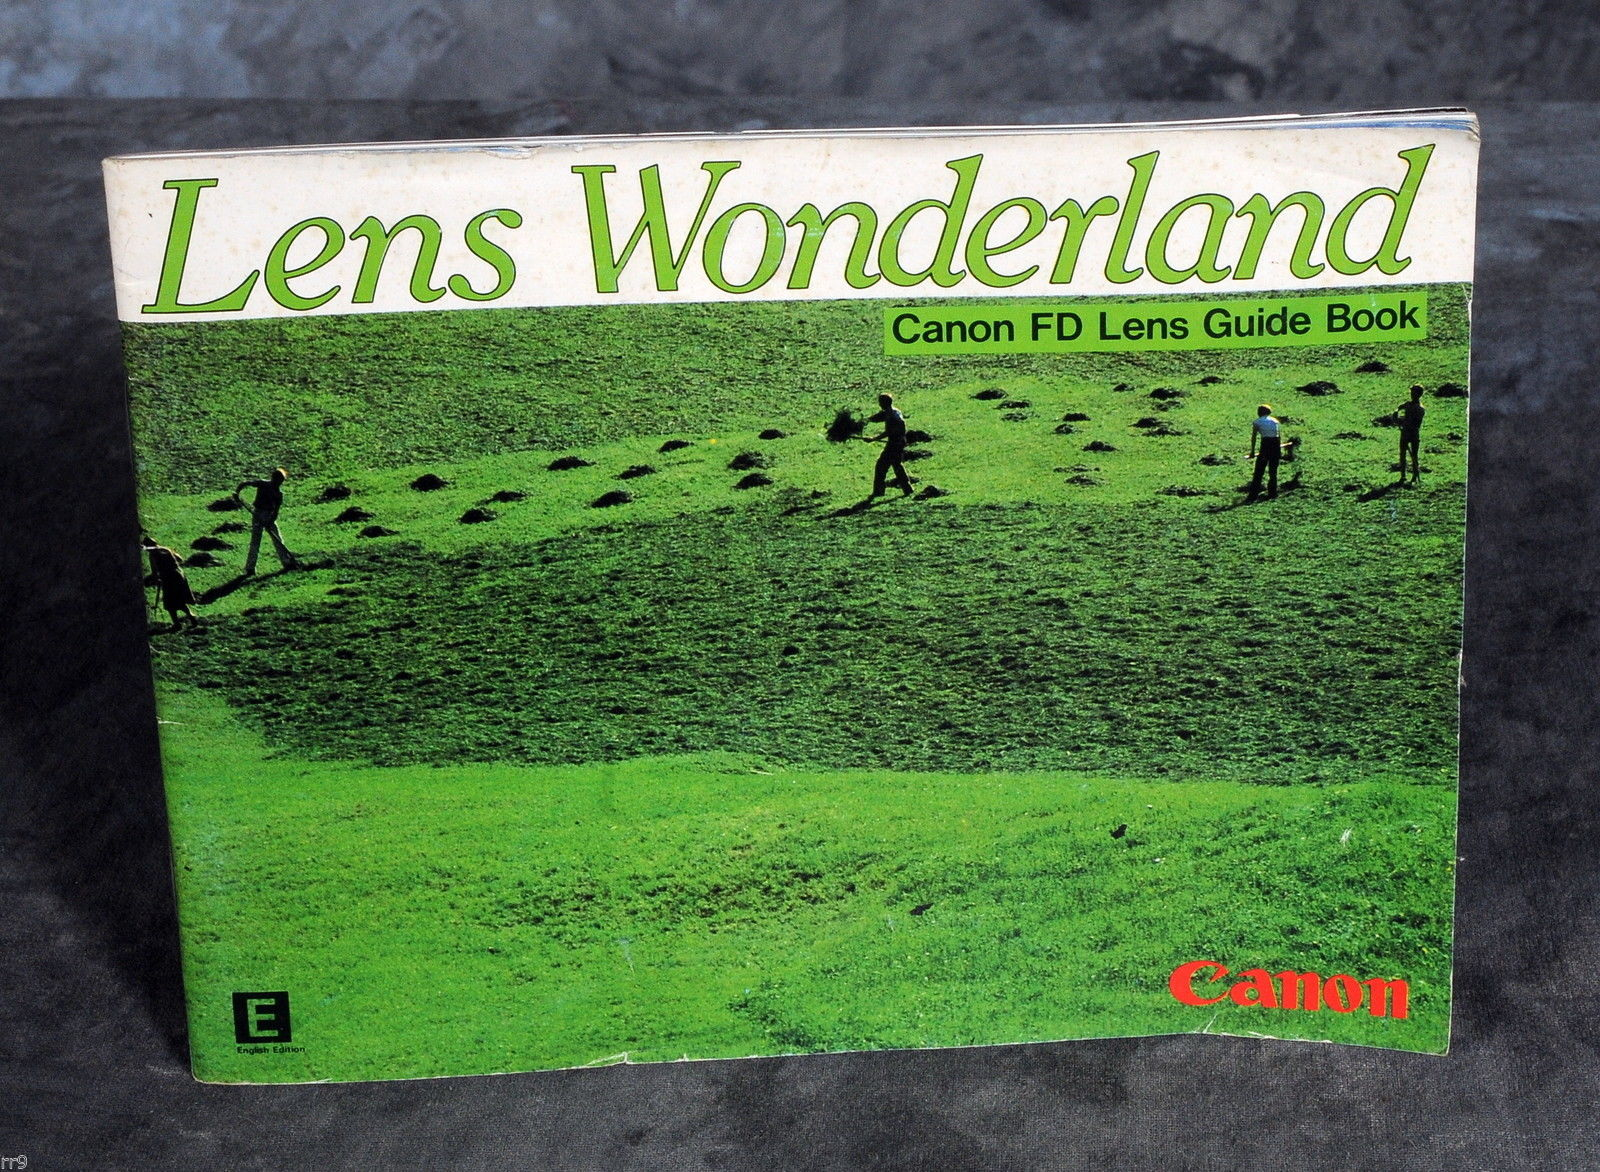 Primary image for Lens Wonderland Canon FD Lens Guide Book 1982 Original Lenses Booklet